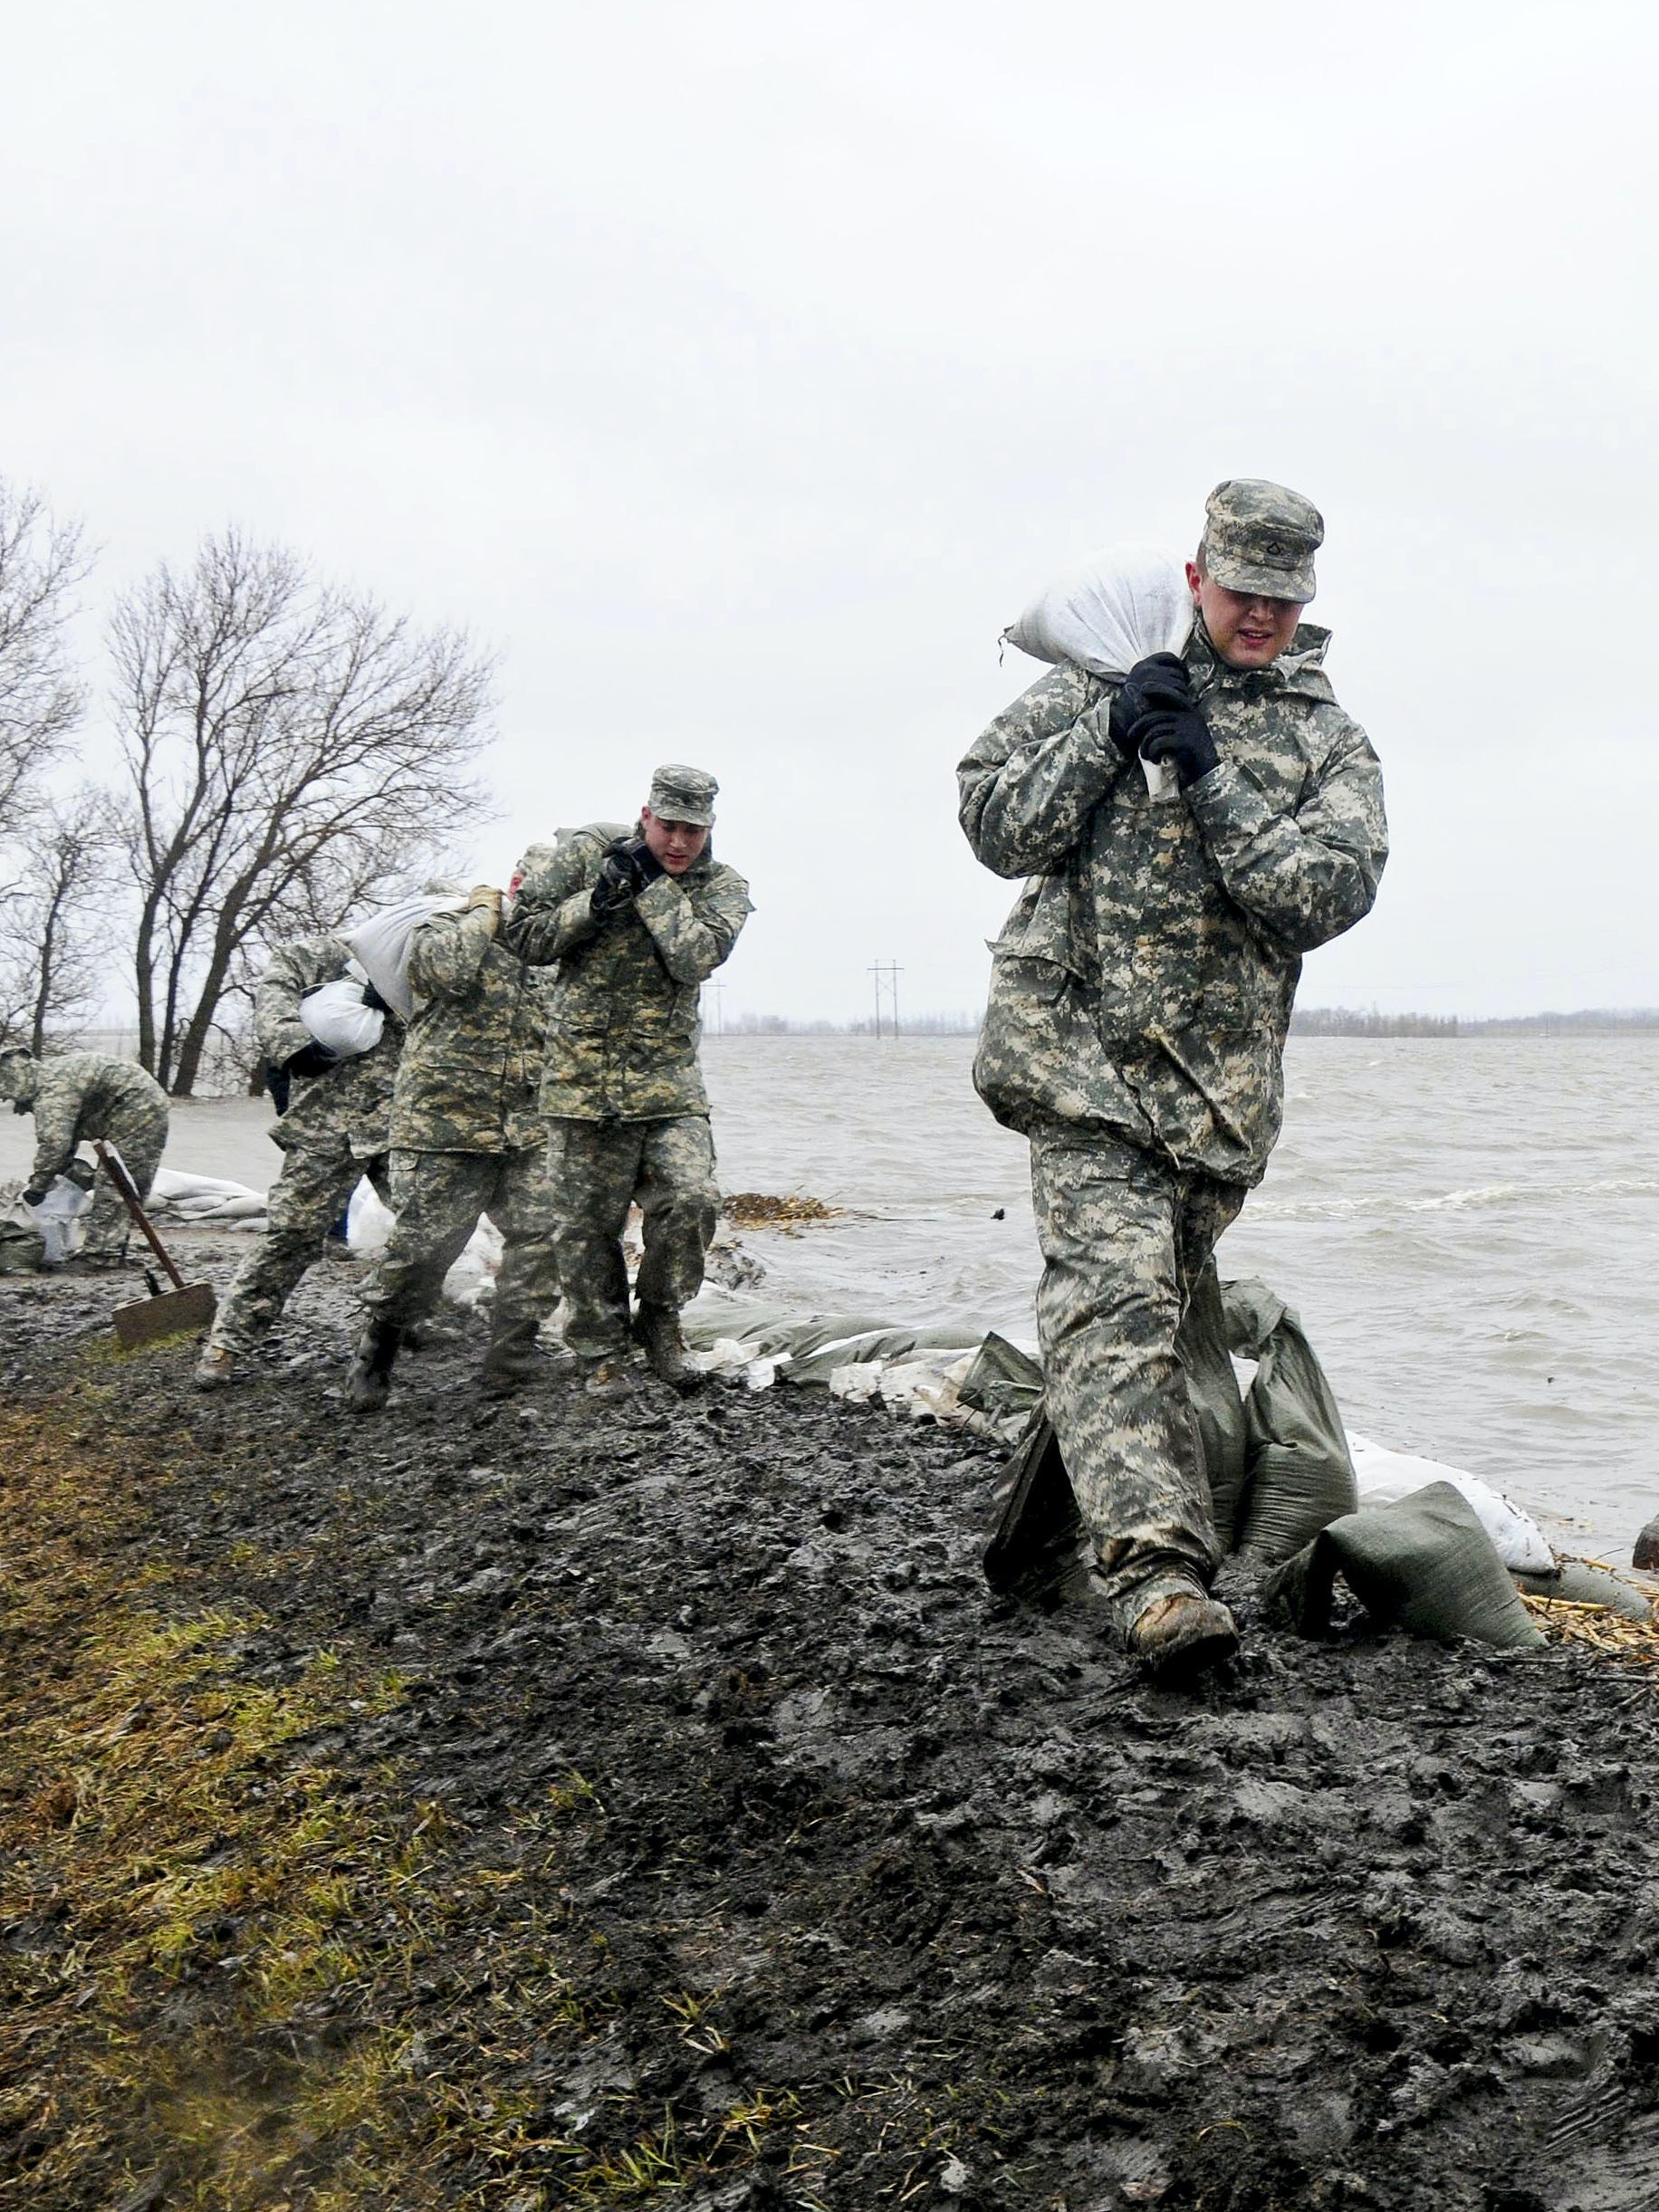 U.S. Army Spcs. Eric Wiederholt (right), Joshua Lanzdorf and Randy Birchfield (3rd from right) carry sandbags in the rain along a flood levee for placement on a flood barrier in a rural farmstead in Cass County, N.D., on April 10, 2011. Wiederholt, Lanzdorf and Birchfield are assigned to the 815th Engineer Company, Detachment 2, based in Lisbon, N.D.